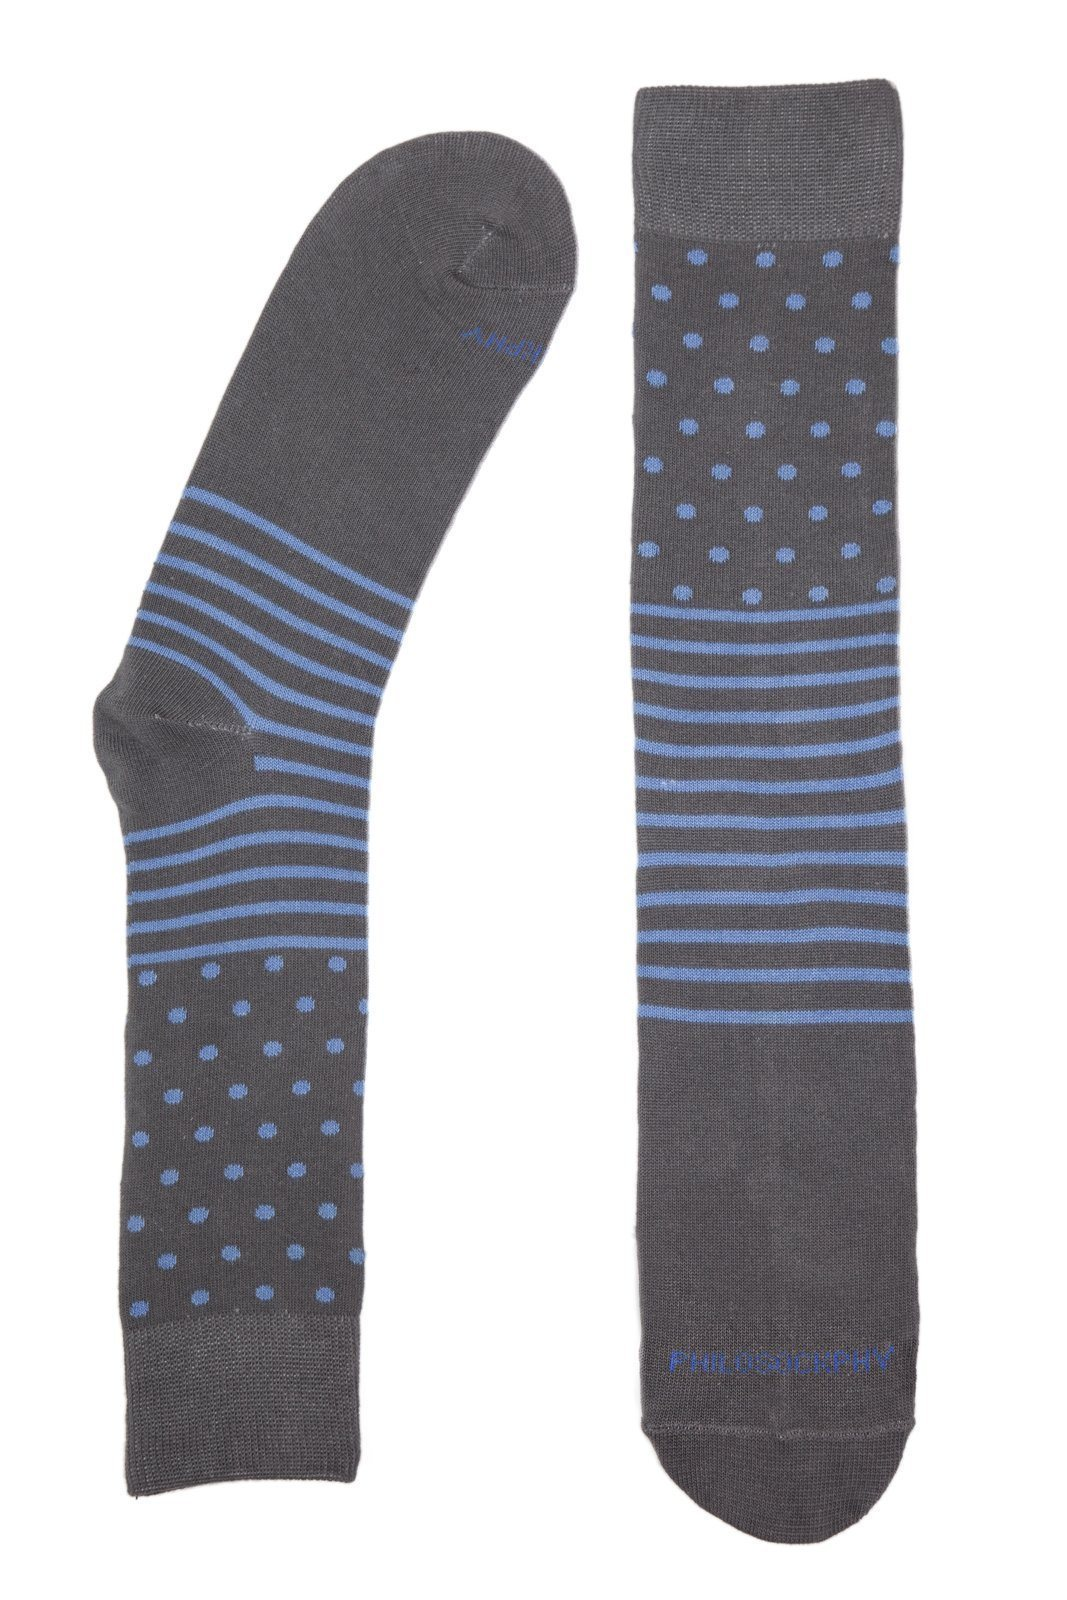 Socks - Dots And Stripes Socks By Philosockphy (Blue)